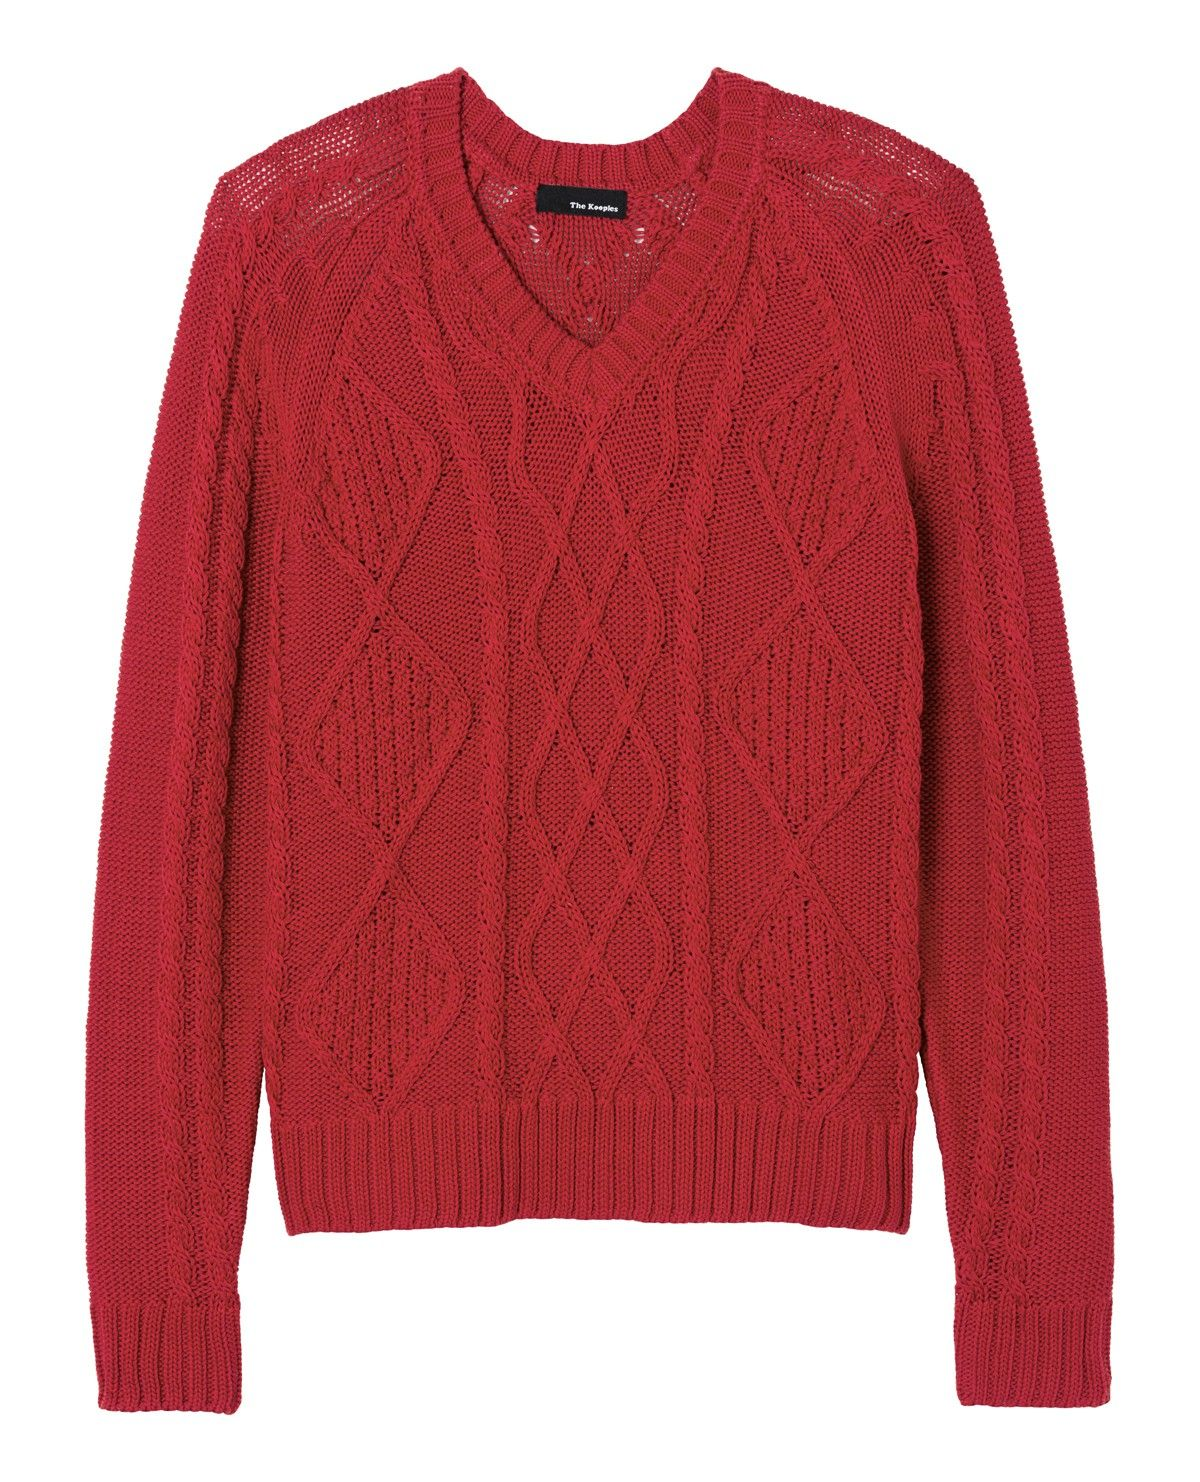 Cable-knit sweater in mercerised cotton - Man - Final Sale - The ...